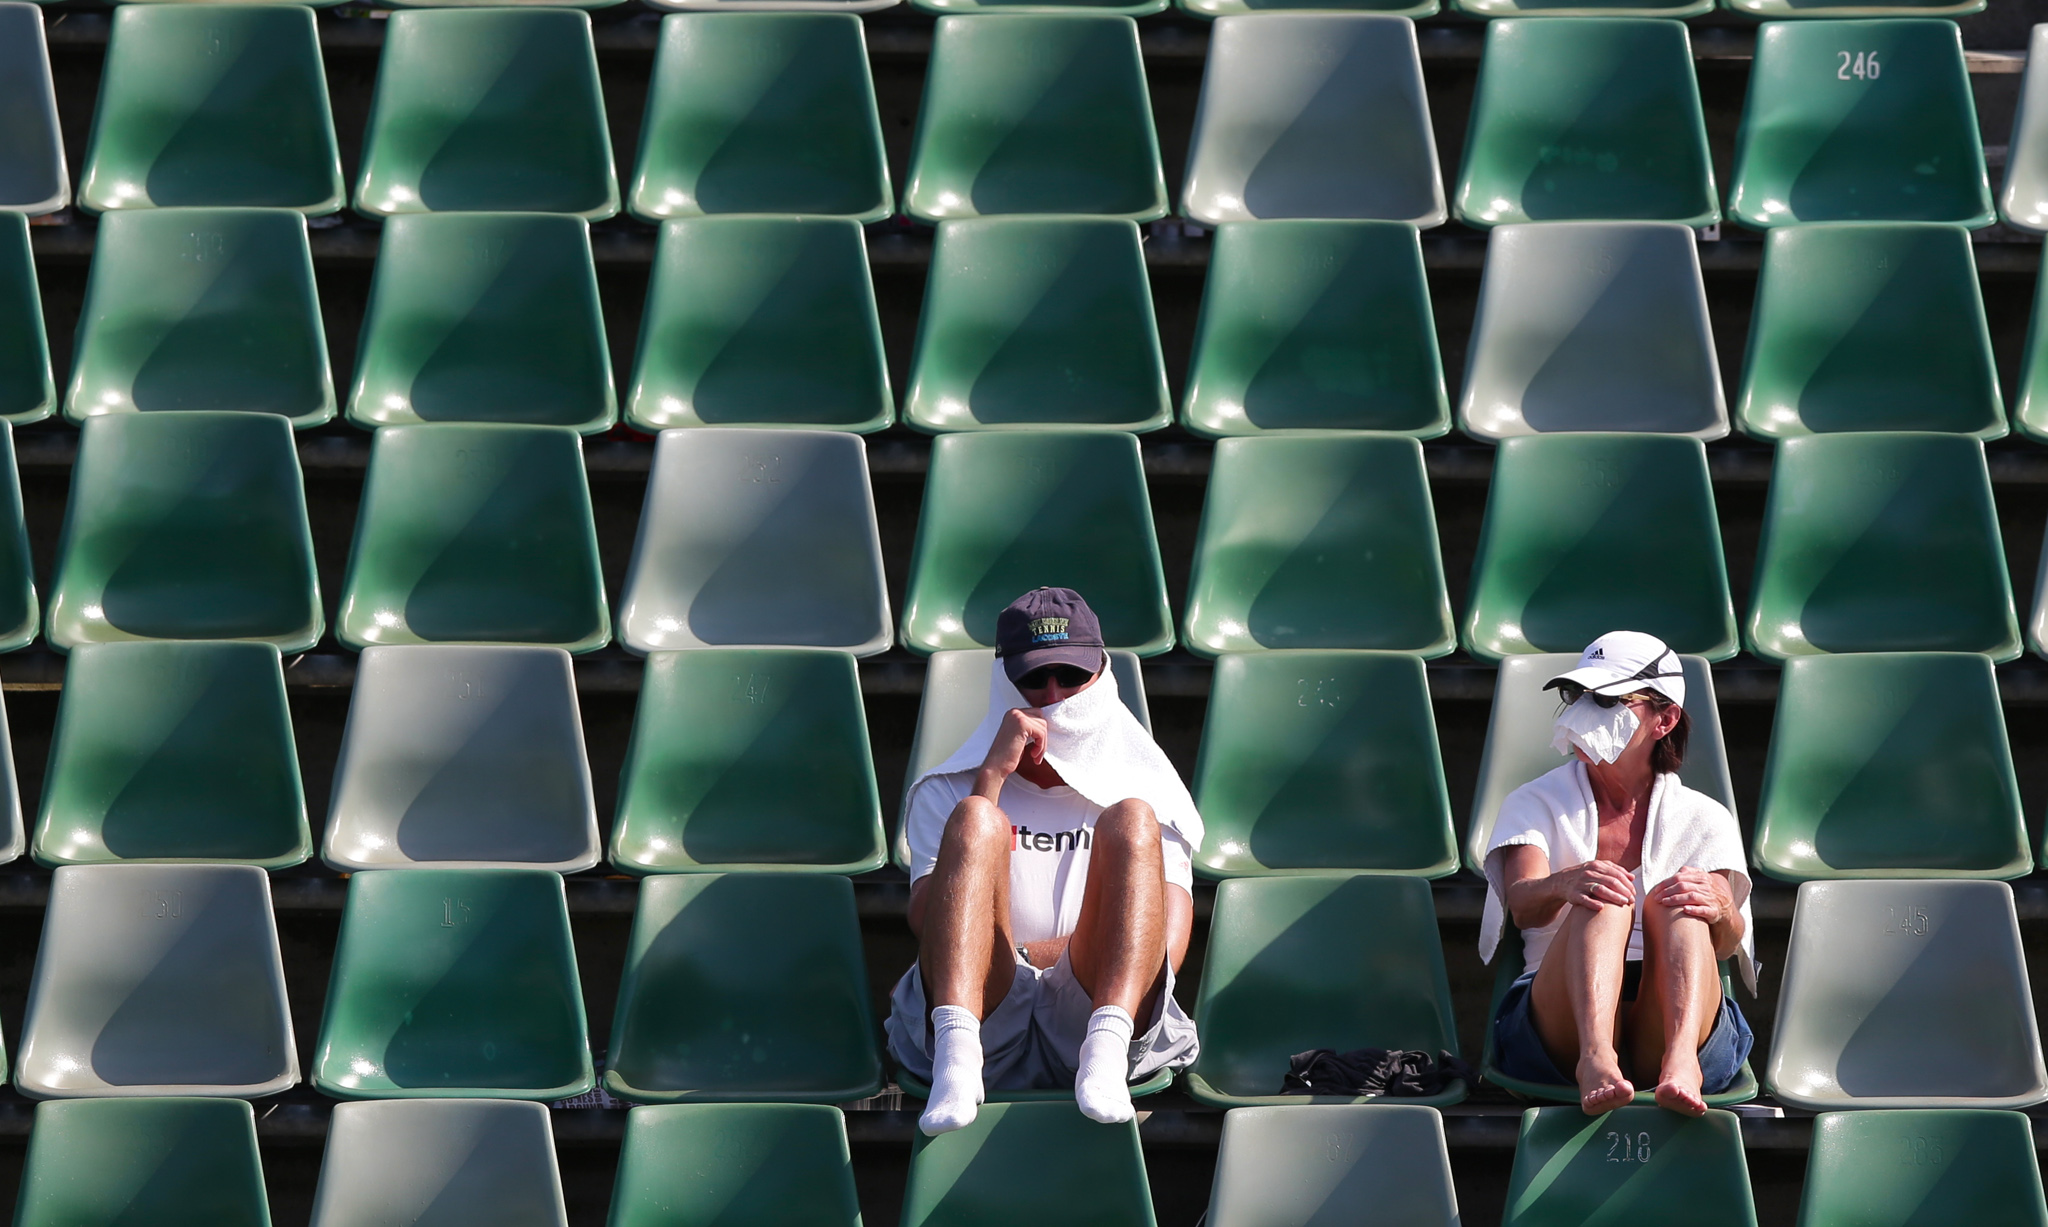 Tennis fans protect themselves from the sun during a first round match at the Australian Open tennis championship in Melbourne, Australia, Tuesday, Jan. 14, 2014.